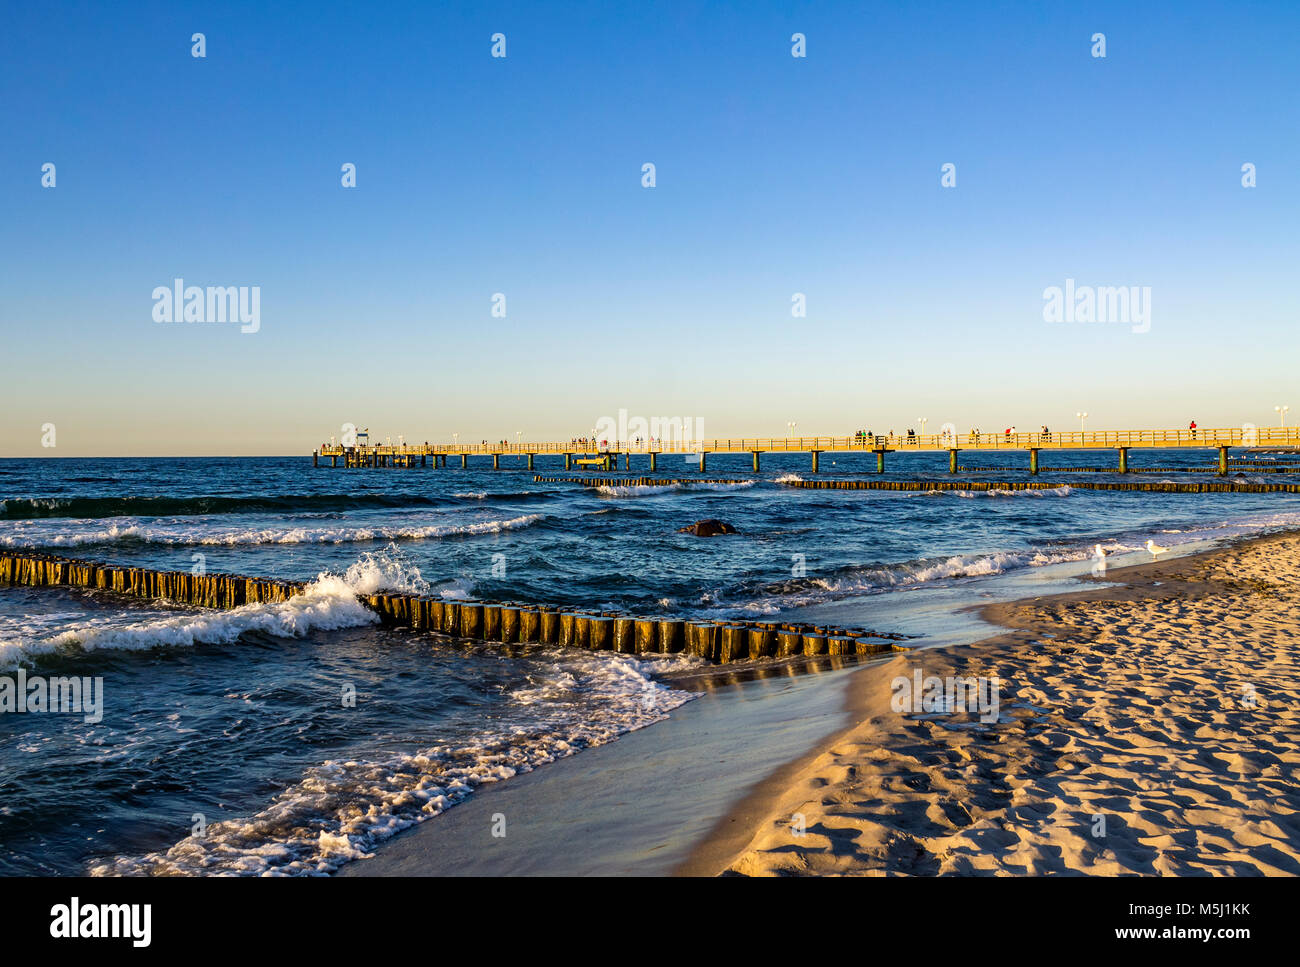 Germany, Mecklenburg-Western Pomerania, Baltic sea seaside resort Kuehlungsborn in the morning, sea bridge - Stock Image